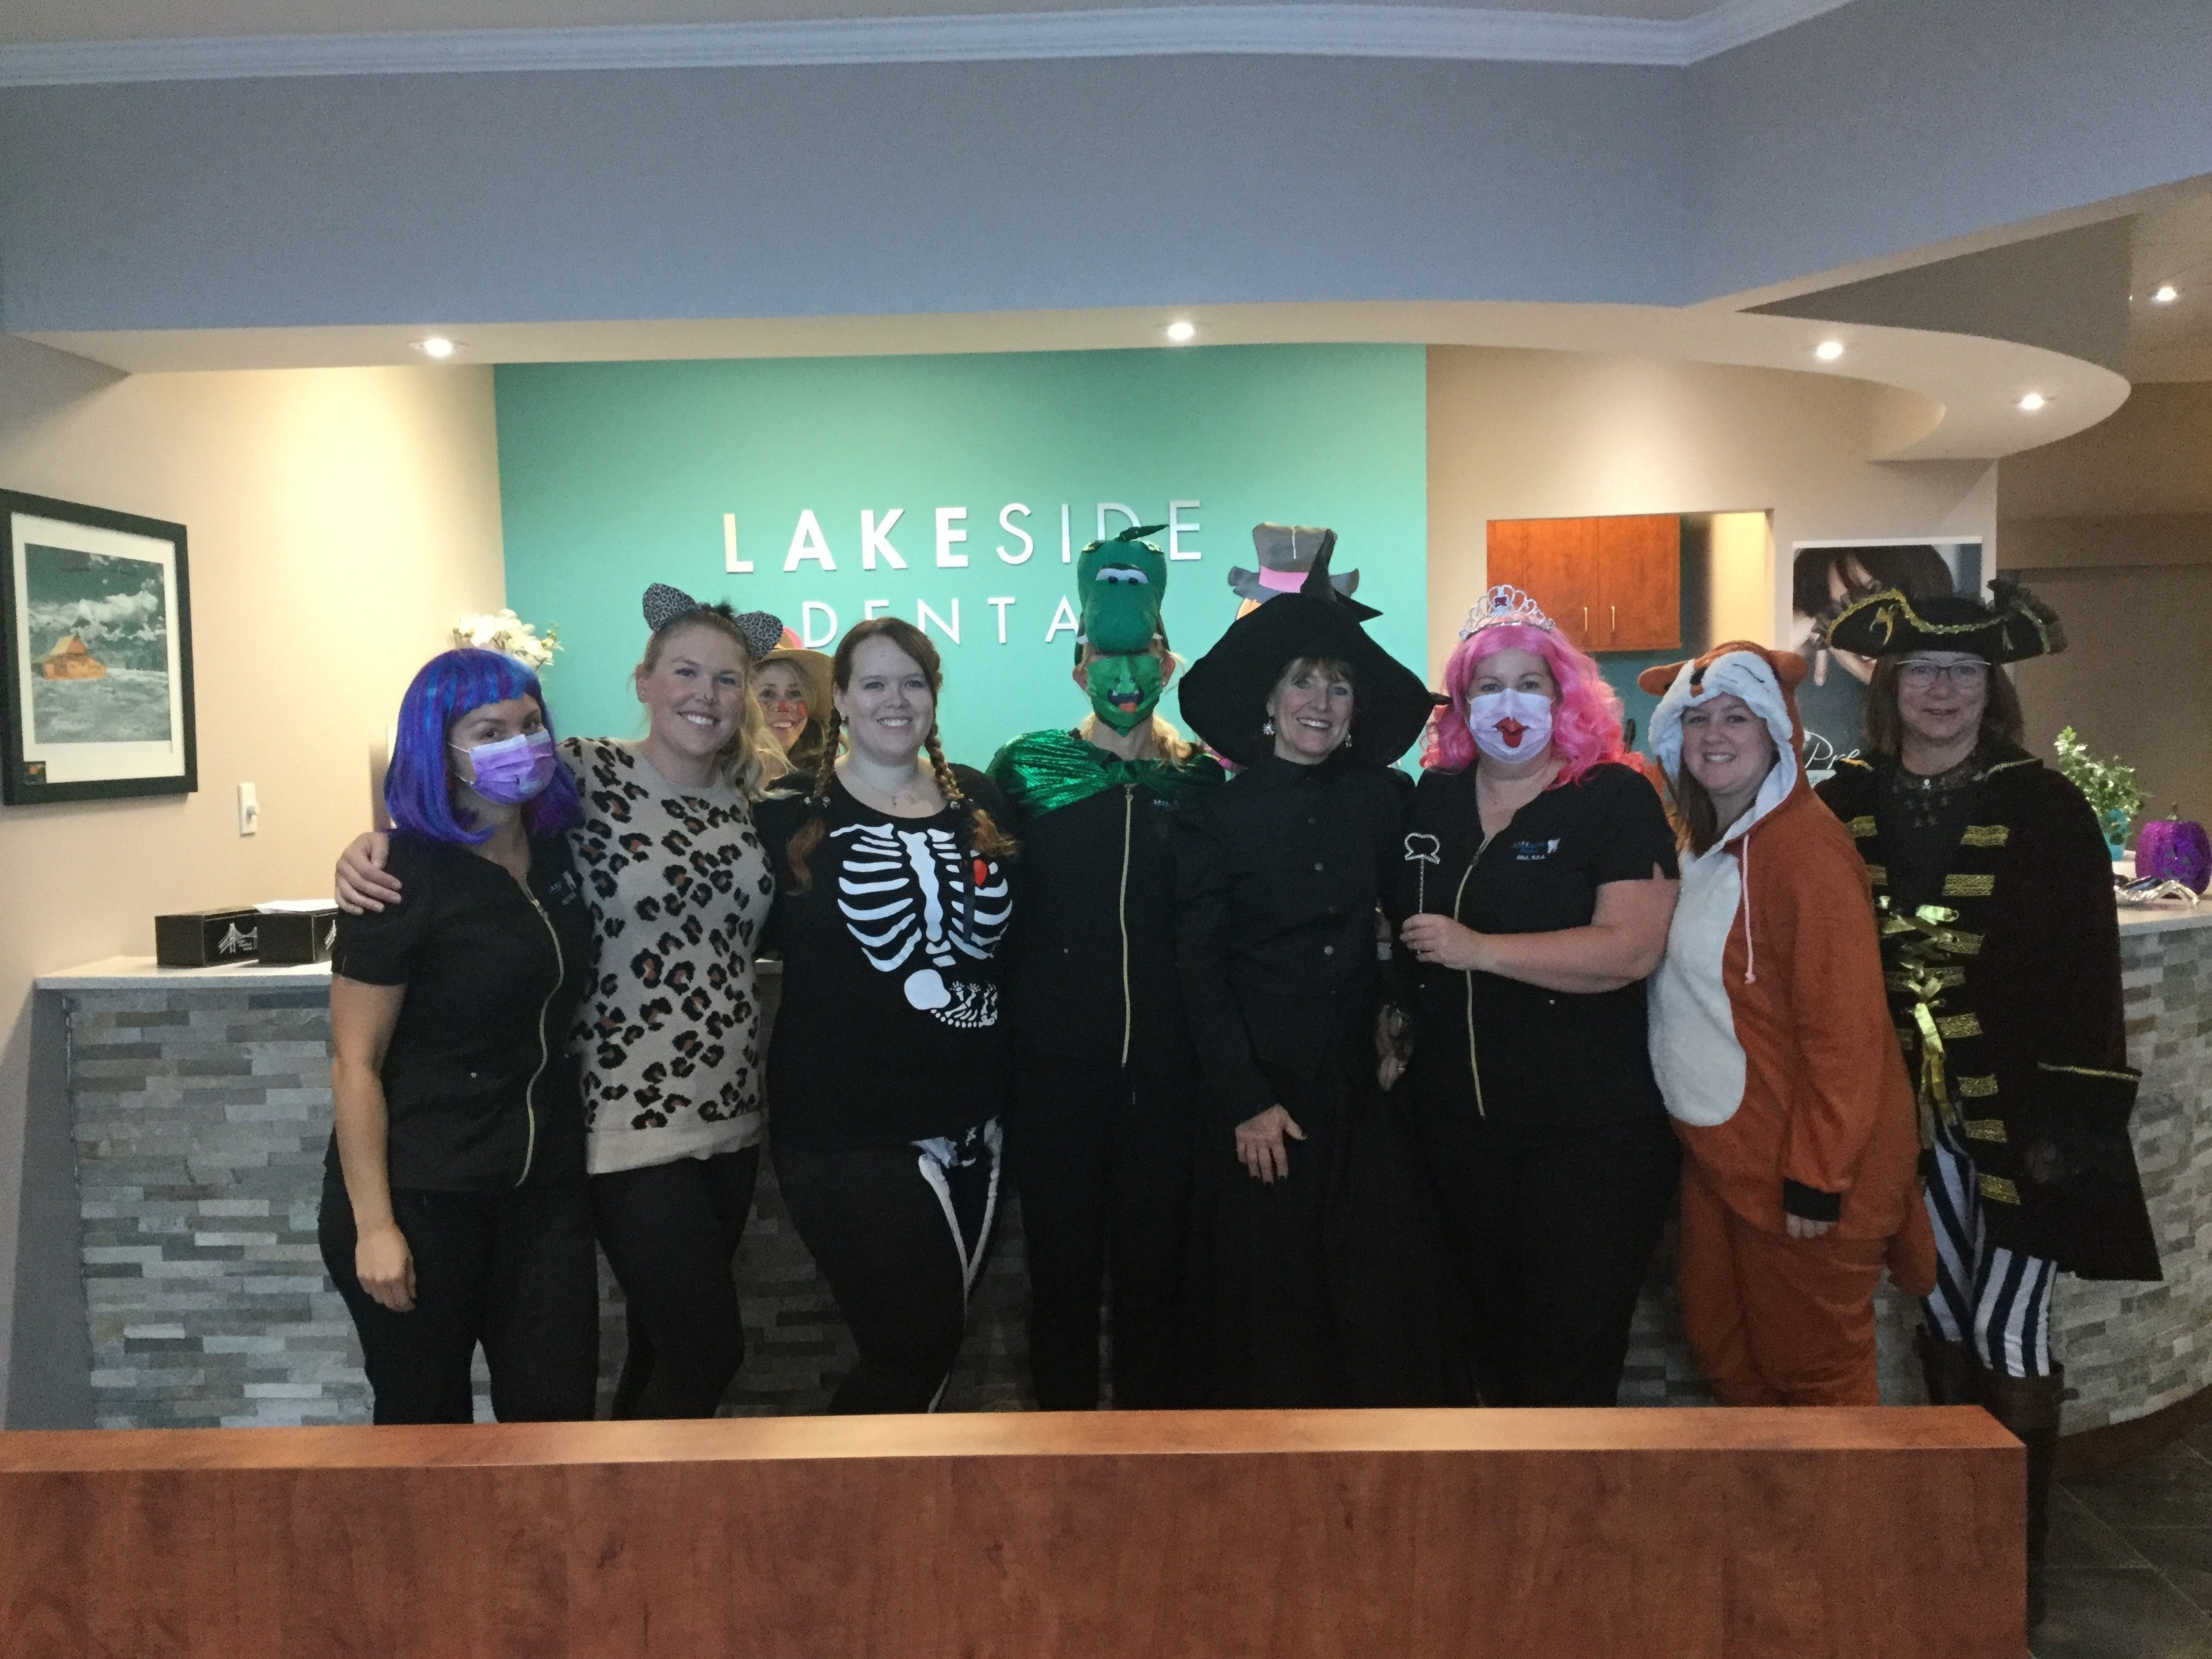 Happy Halloween from Lakeside Dental